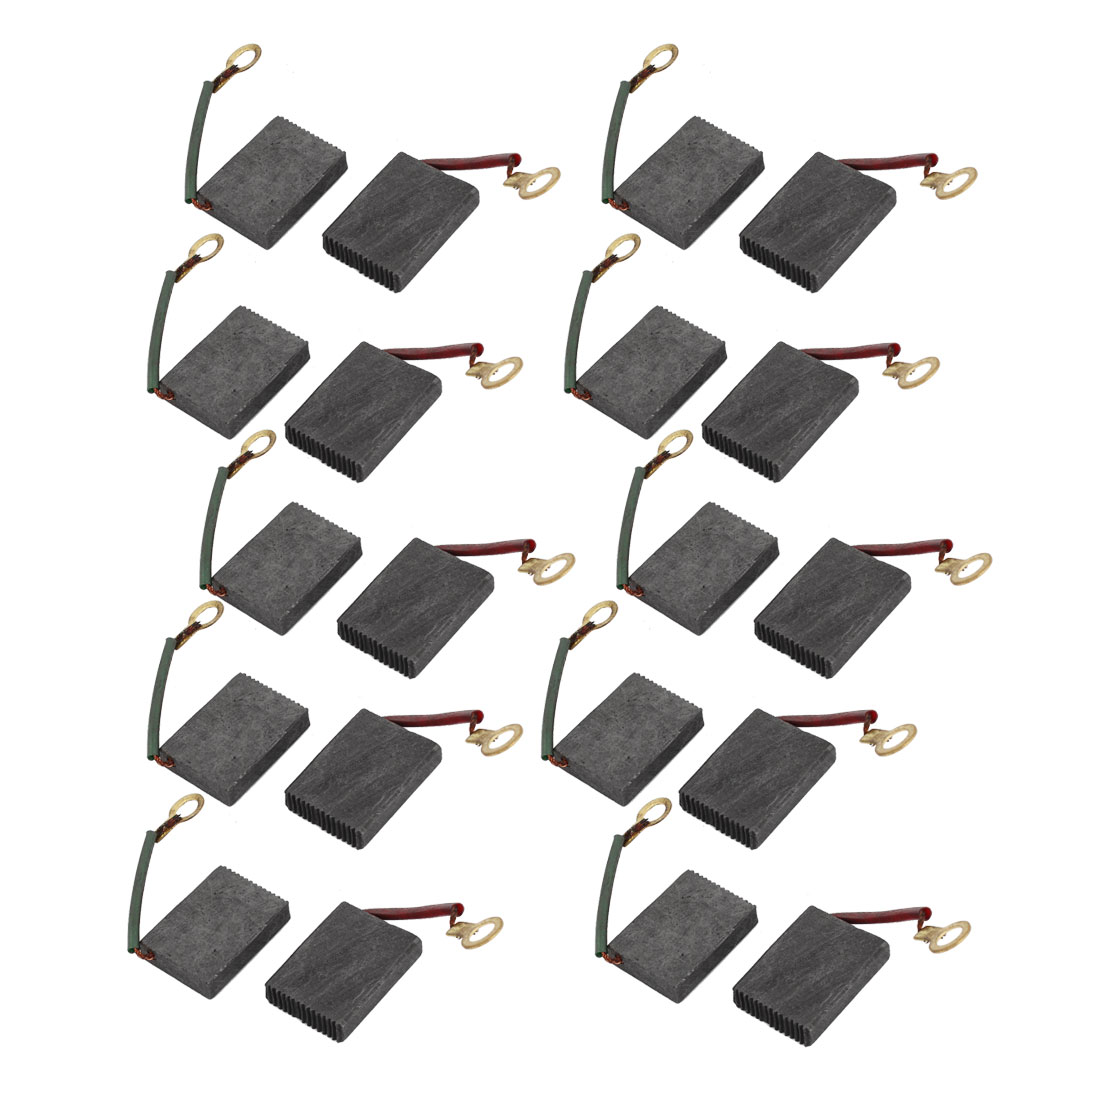 20 Pcs Spare Part Spring Type Electric Drill Motor 21mm x 16mm x 5mm Carbon Brushes